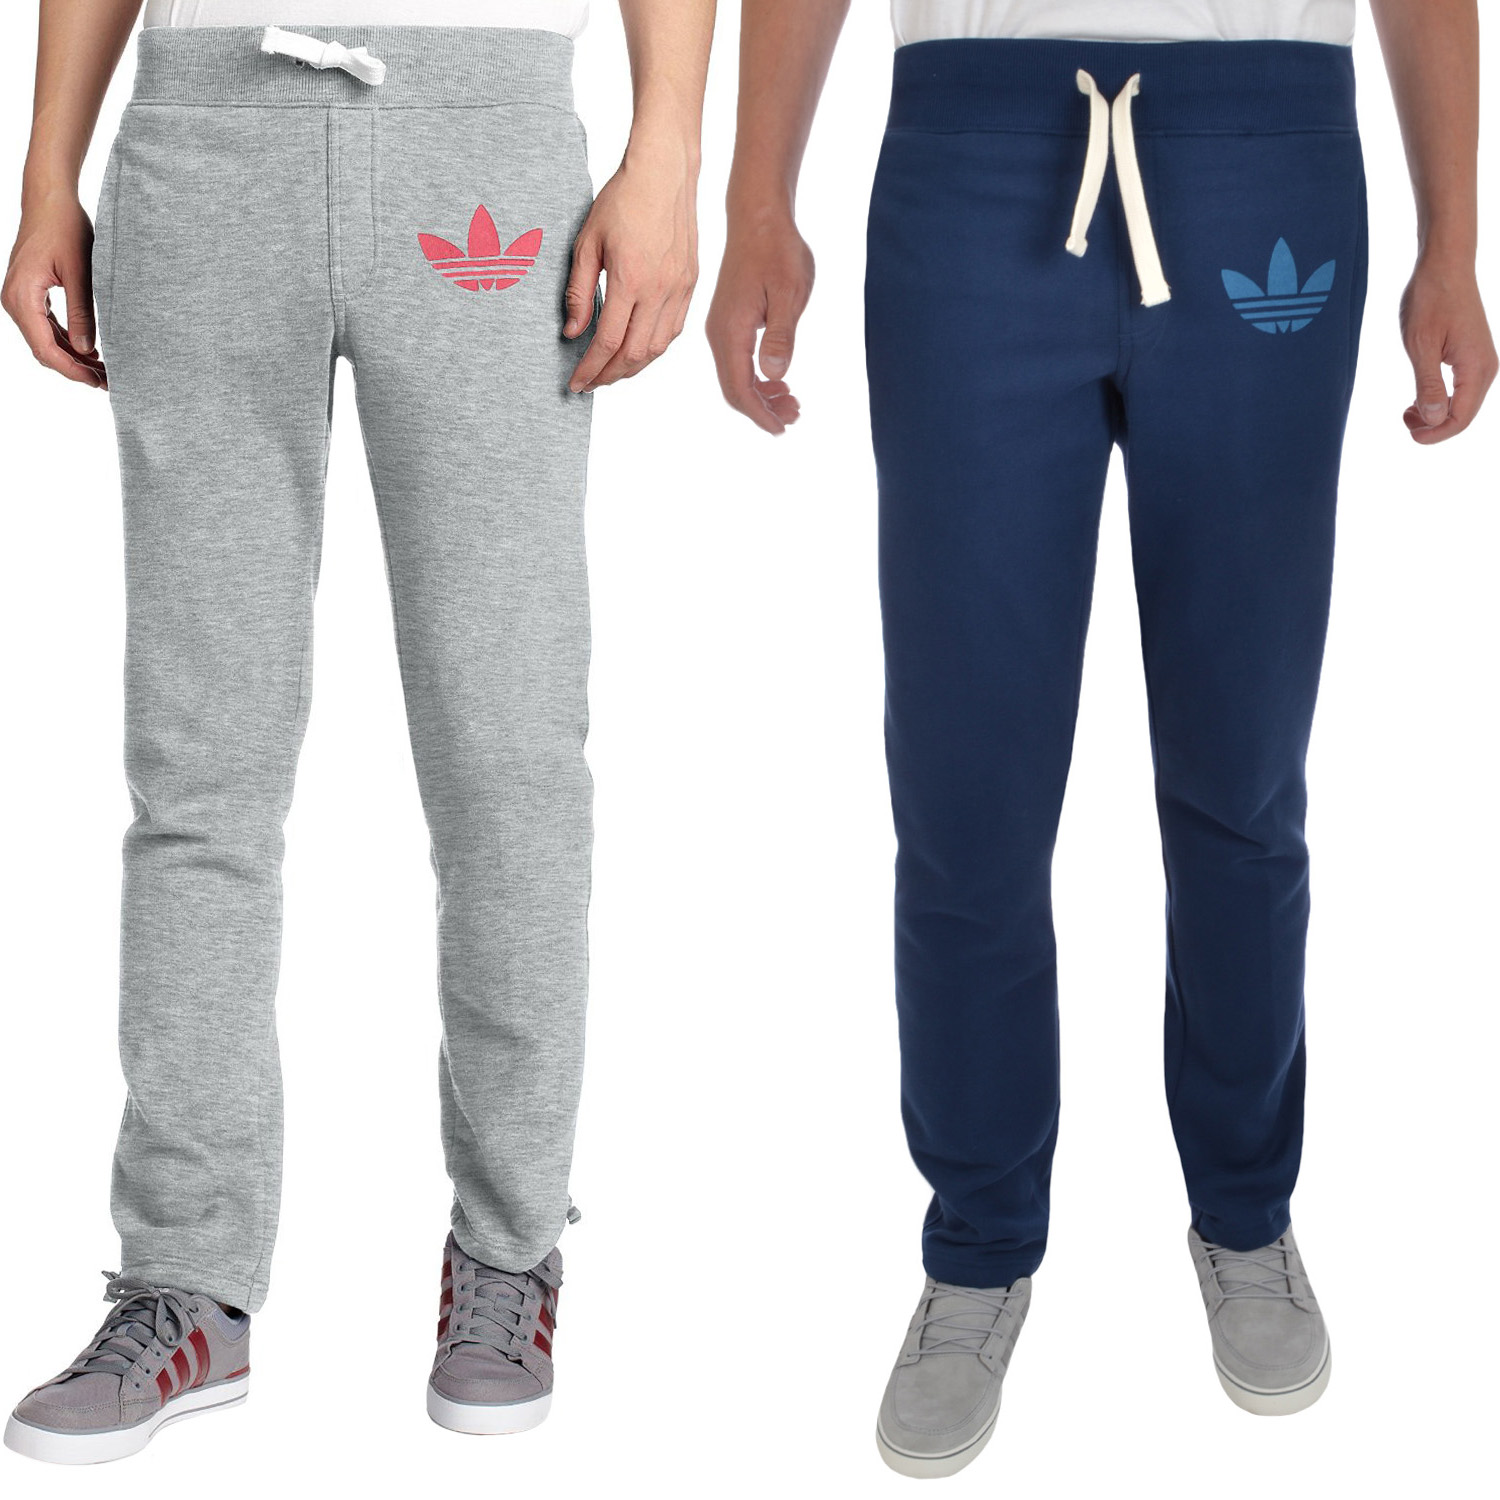 The Slim-Fit Jogger has been upgraded. The Original Jogger is here and it's better value than ever before.. Our Slim-Fit Sweatpants are casual jogging bottoms with a tapered fit allowing you to move freely with minimal restriction and maximal comfort/5(47).